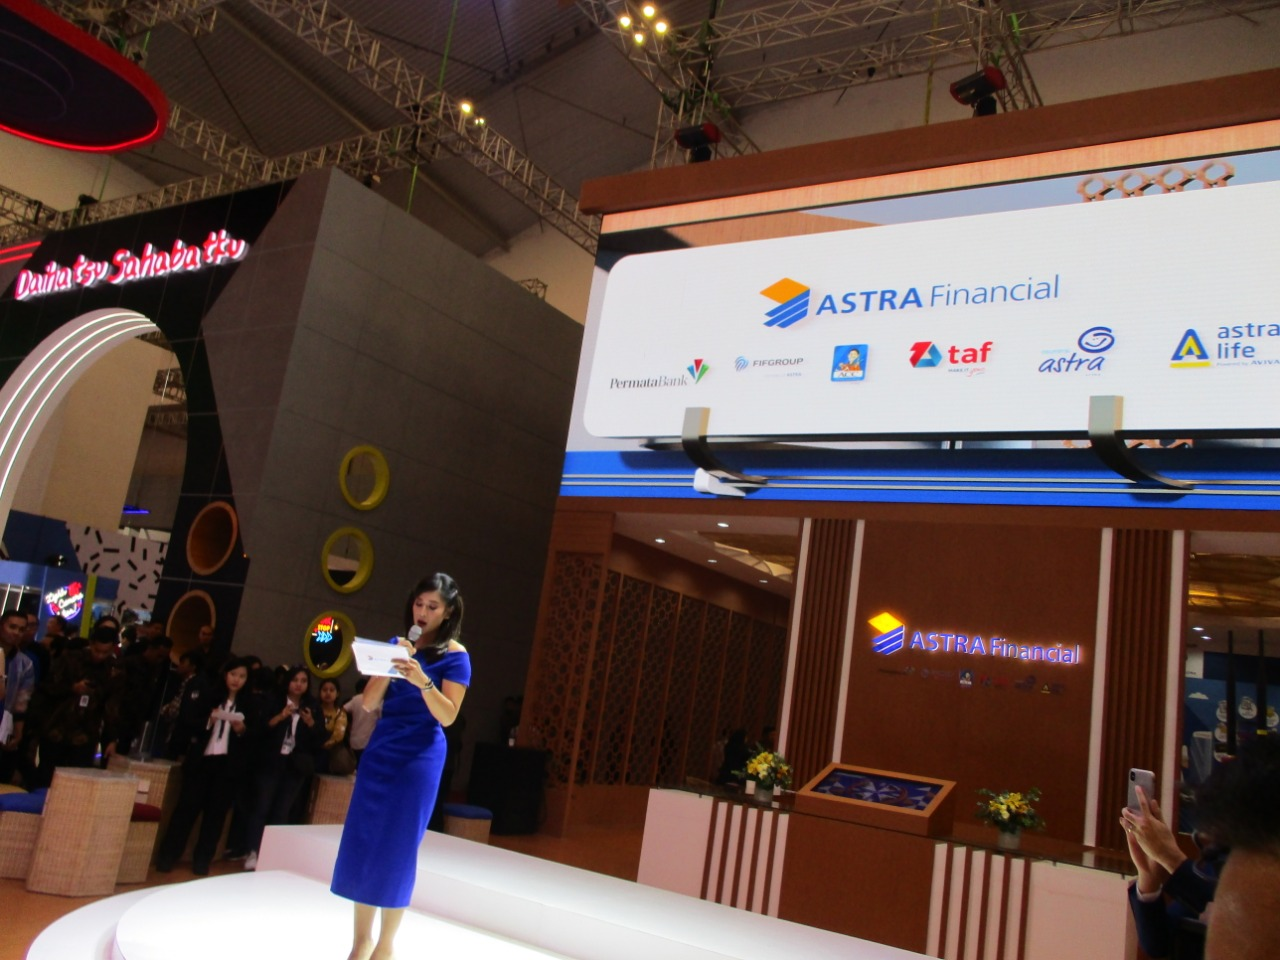 Dian sastrowardoyo di Astra Financial GIIAS